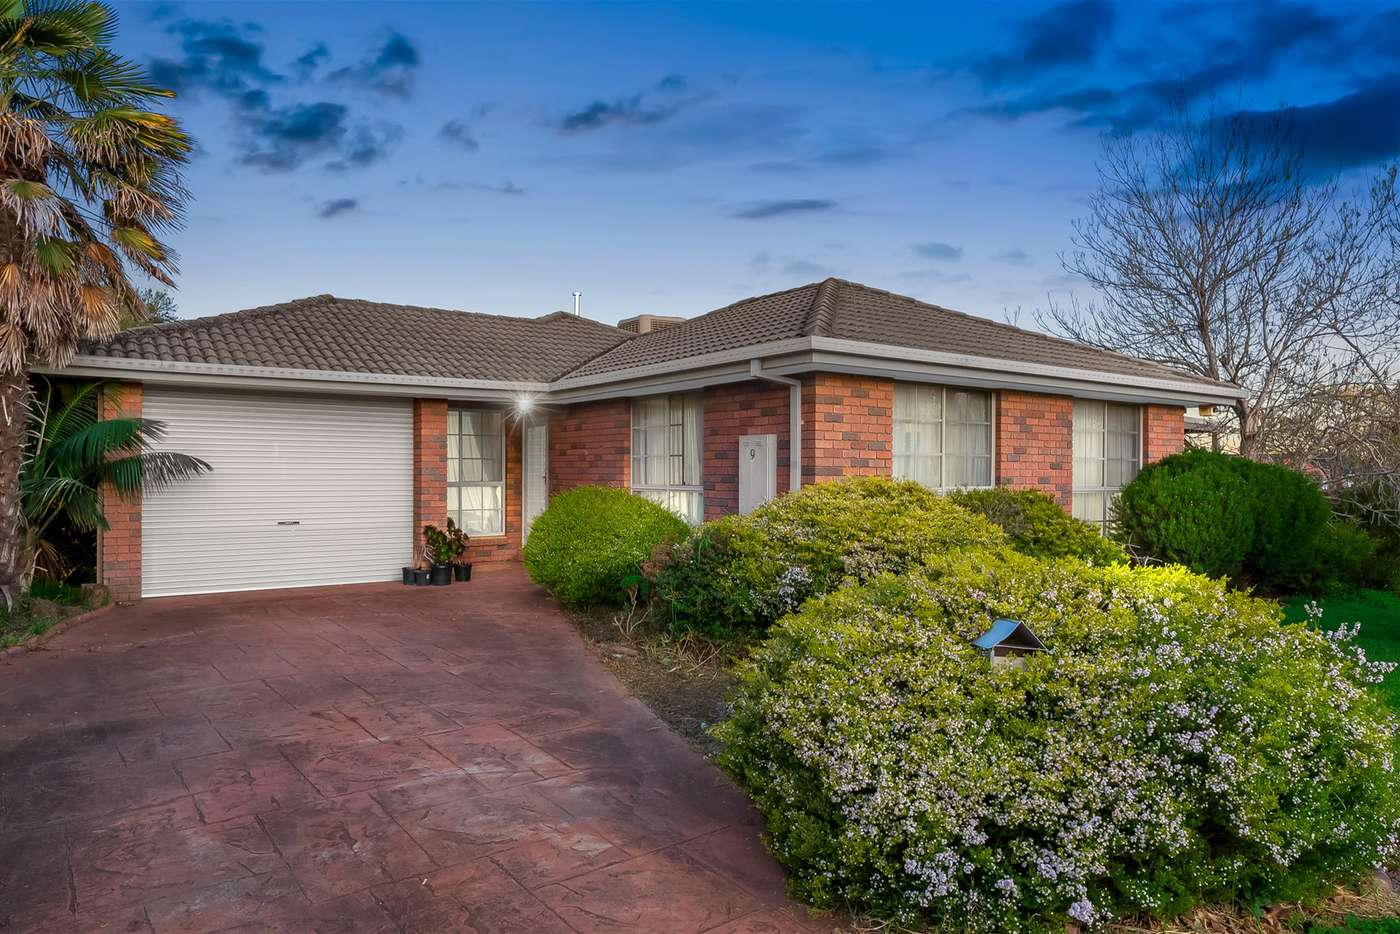 Main view of Homely house listing, 9 Dunai Walk, Delahey VIC 3037